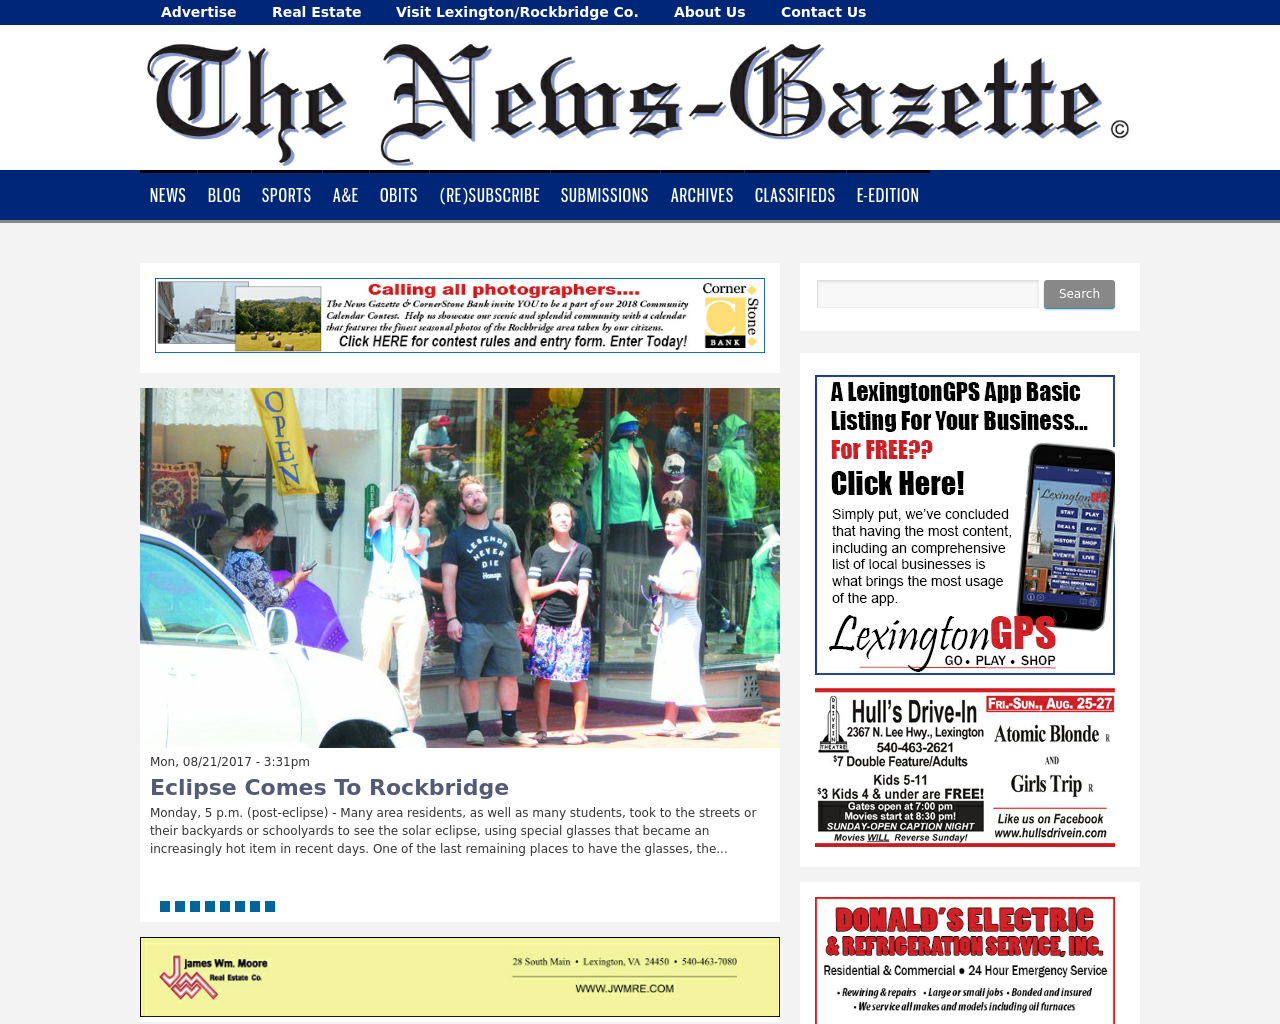 The-News-Gazette-Advertising-Reviews-Pricing